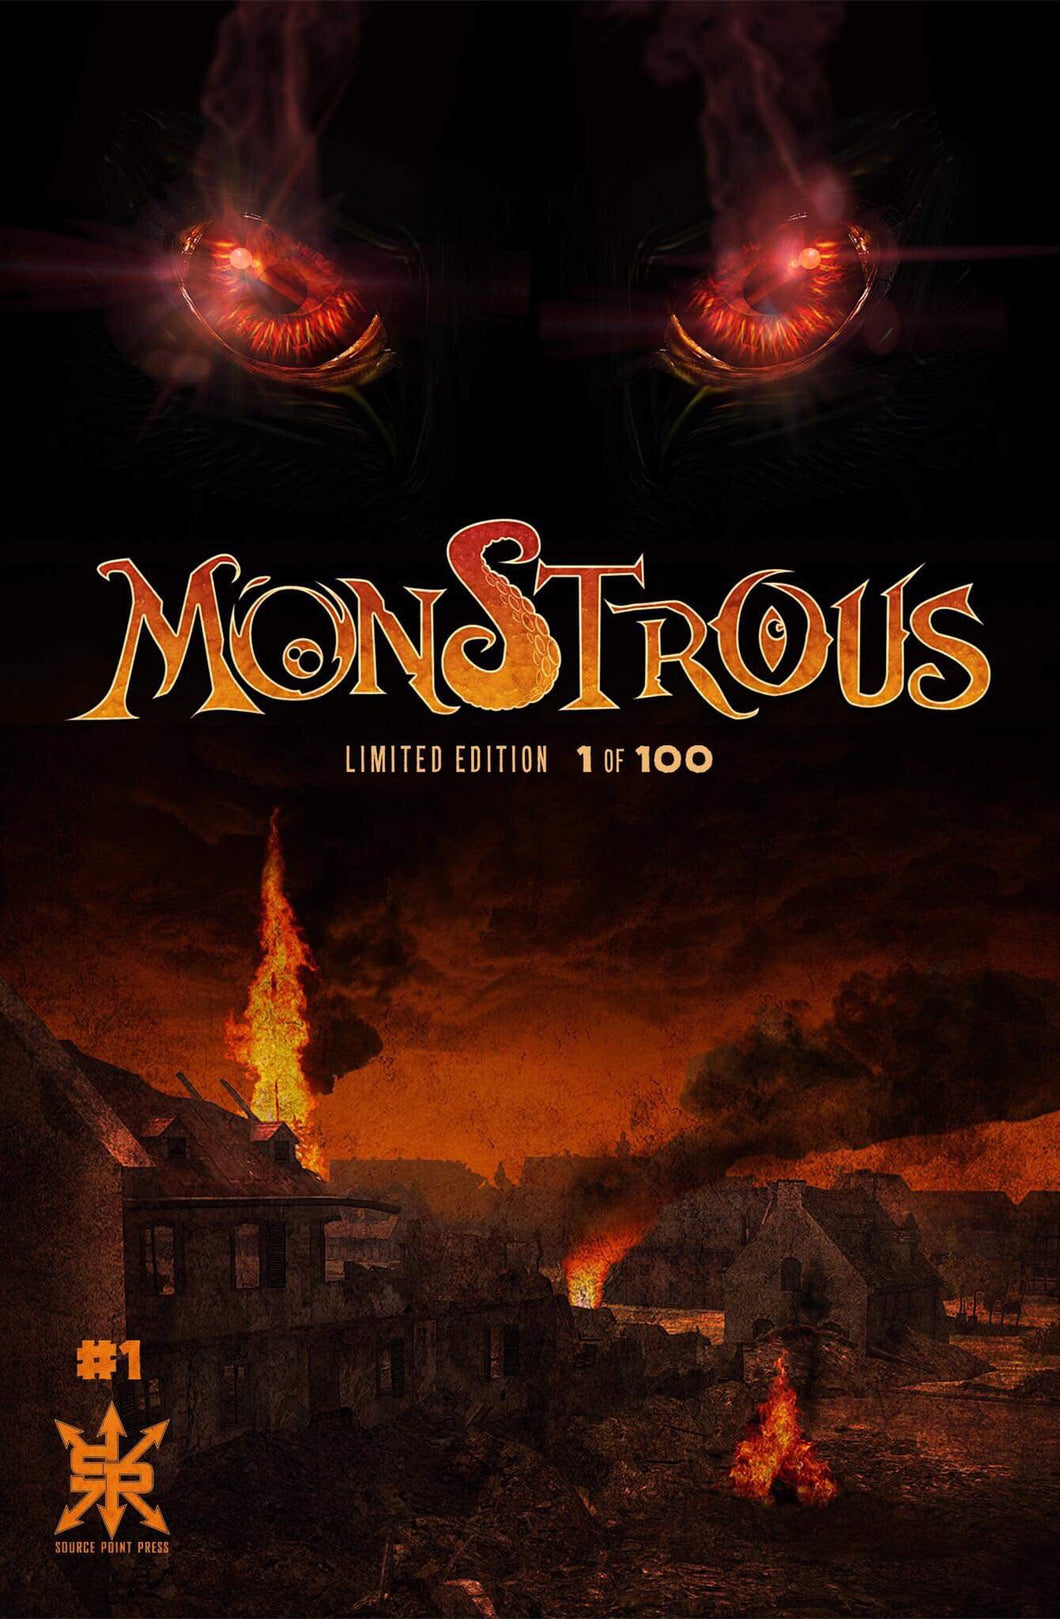 MONSTROUS #1 BTC EXCLUSIVE LIMITED TO 100 COPIES (11 Copies Left)